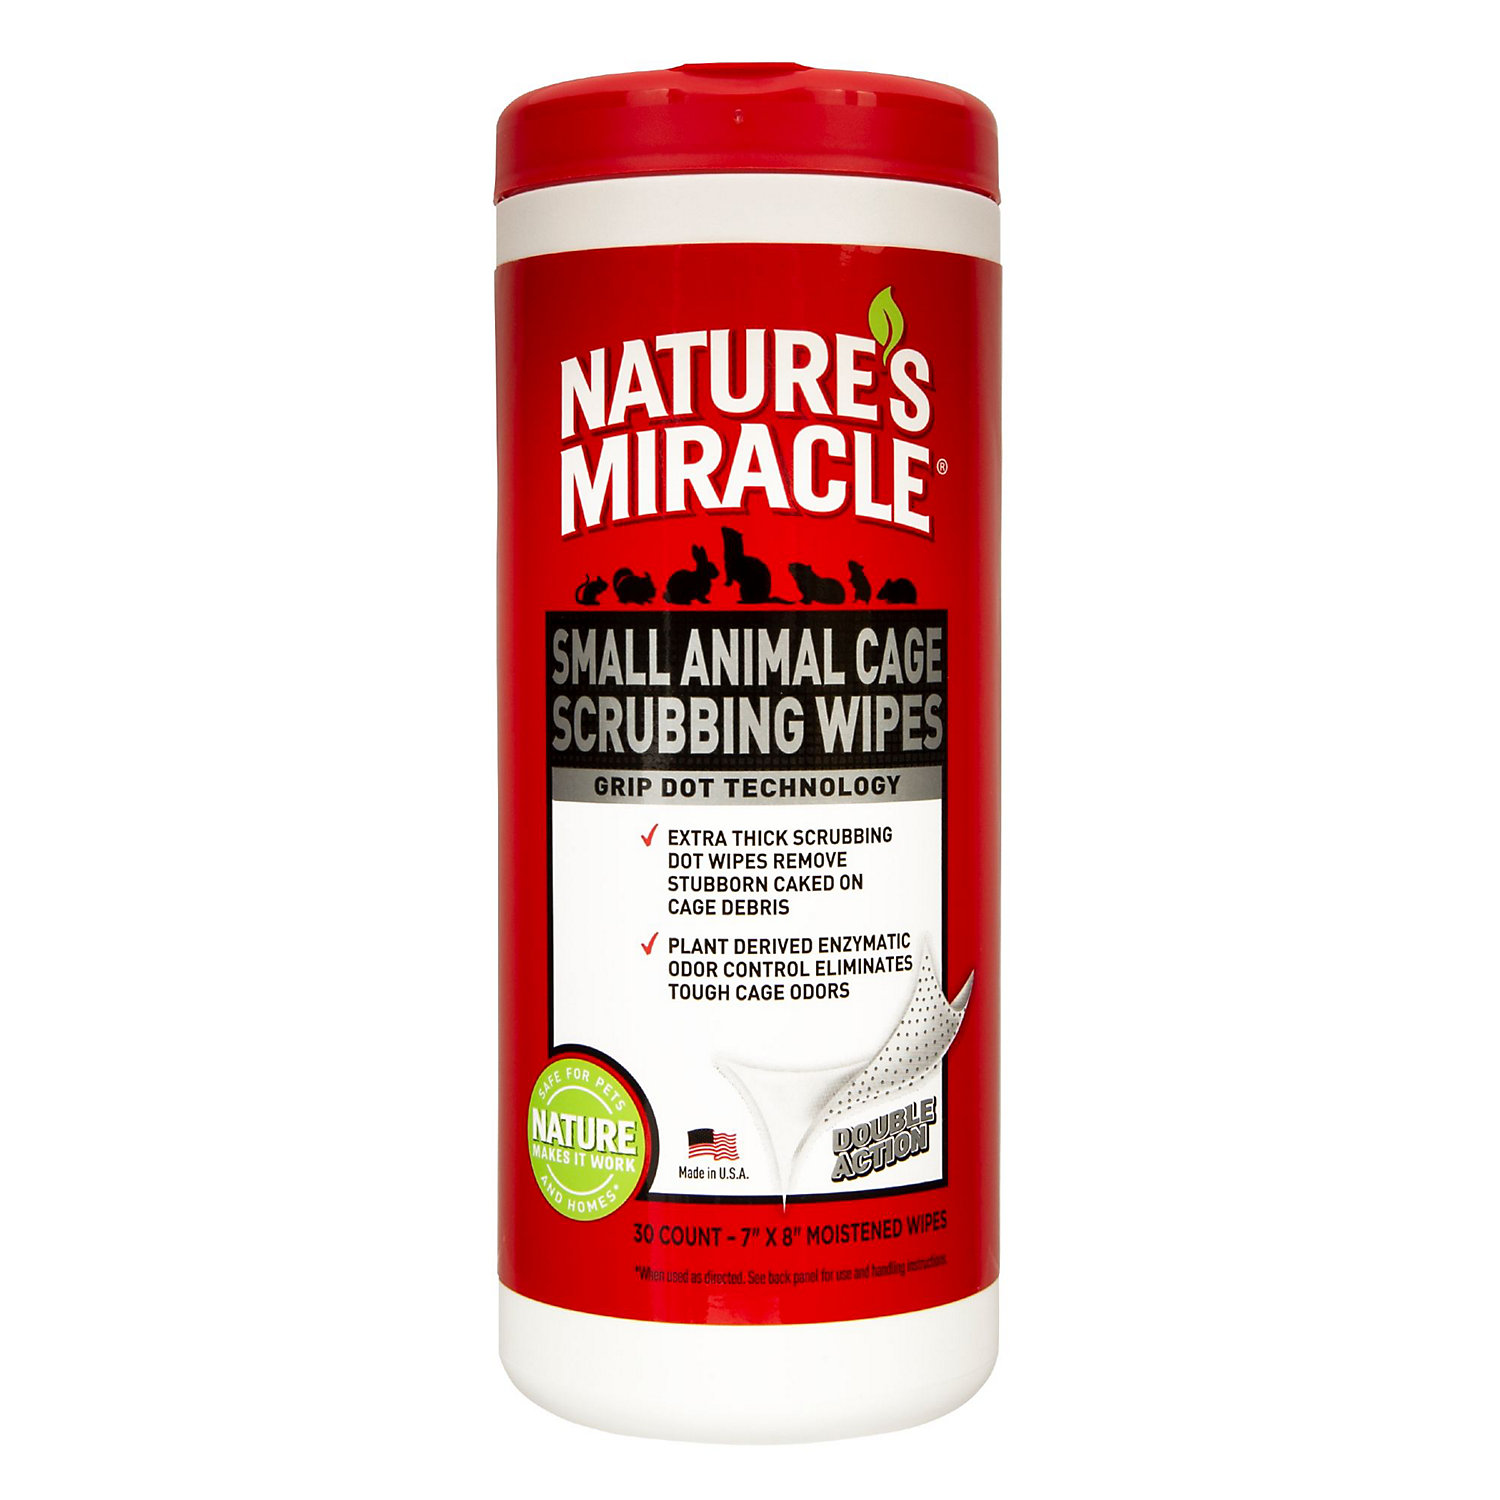 Natures Miracle Small Animal Cage Scrubbing Wipes 30 Count Red